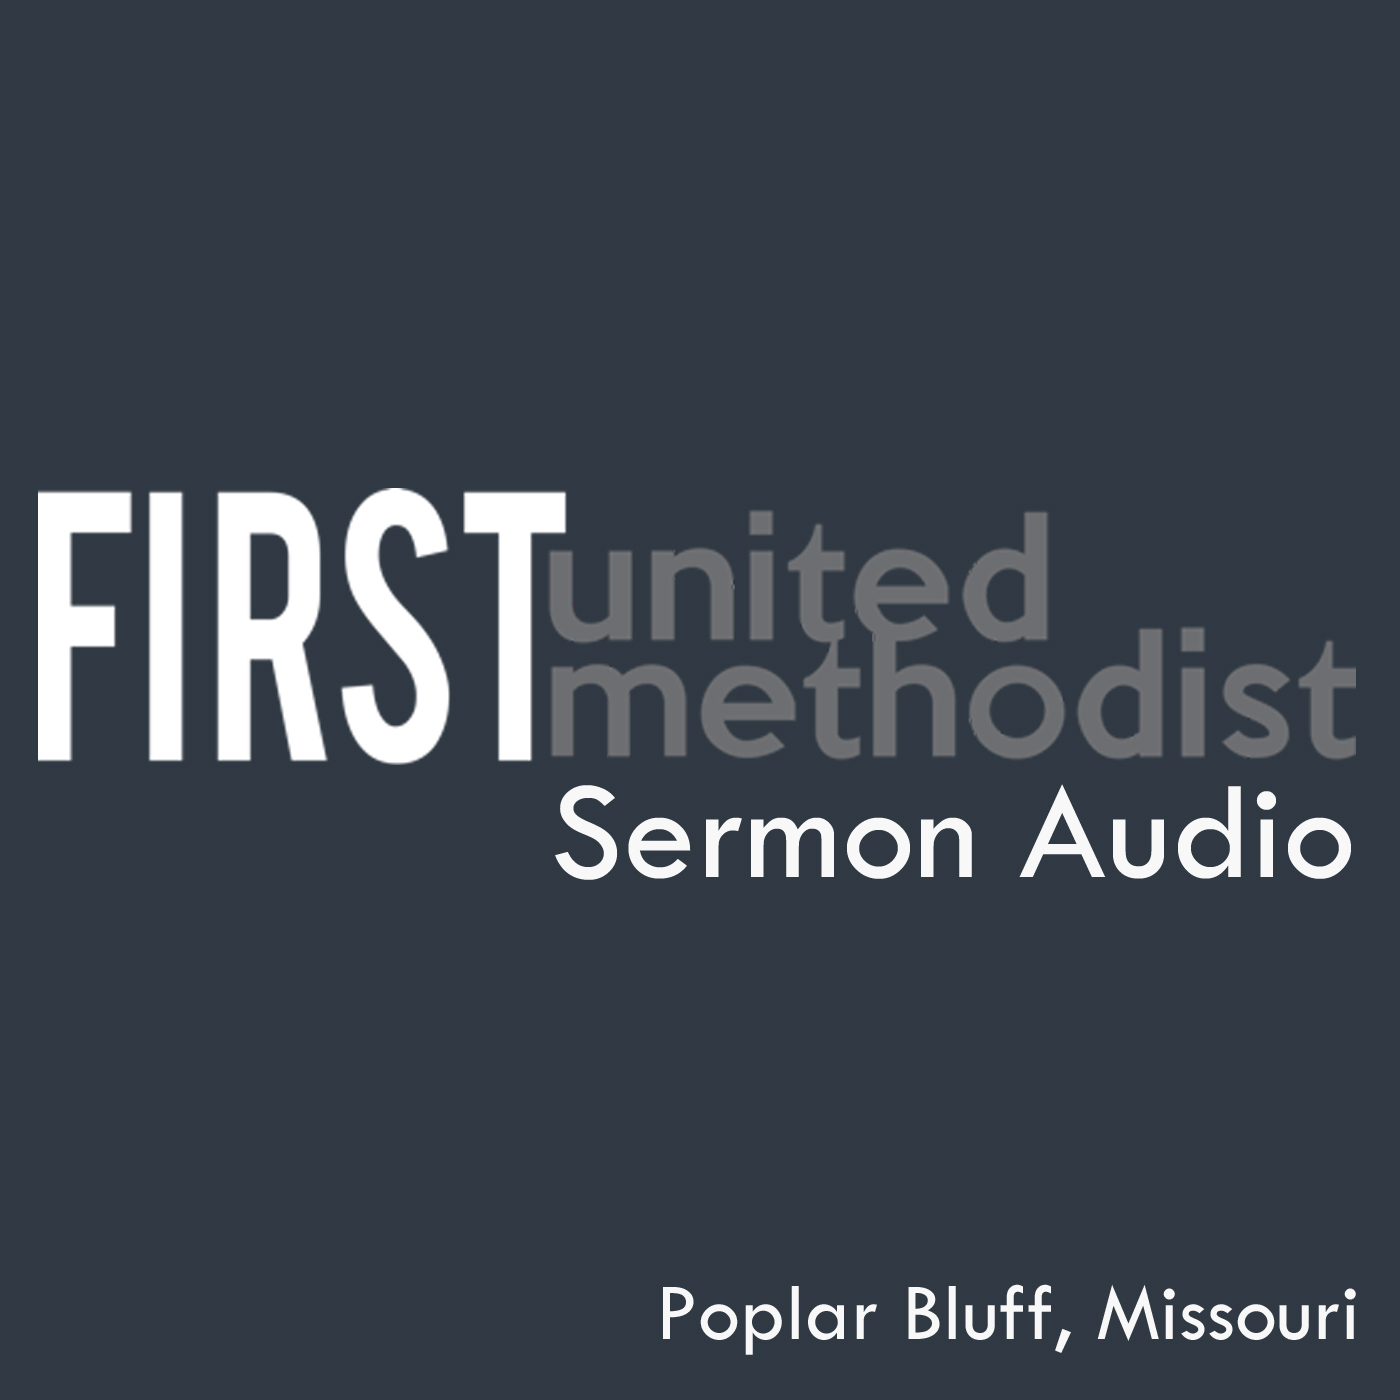 Newest Sermons - First United Methodist Church in Poplar Bluff